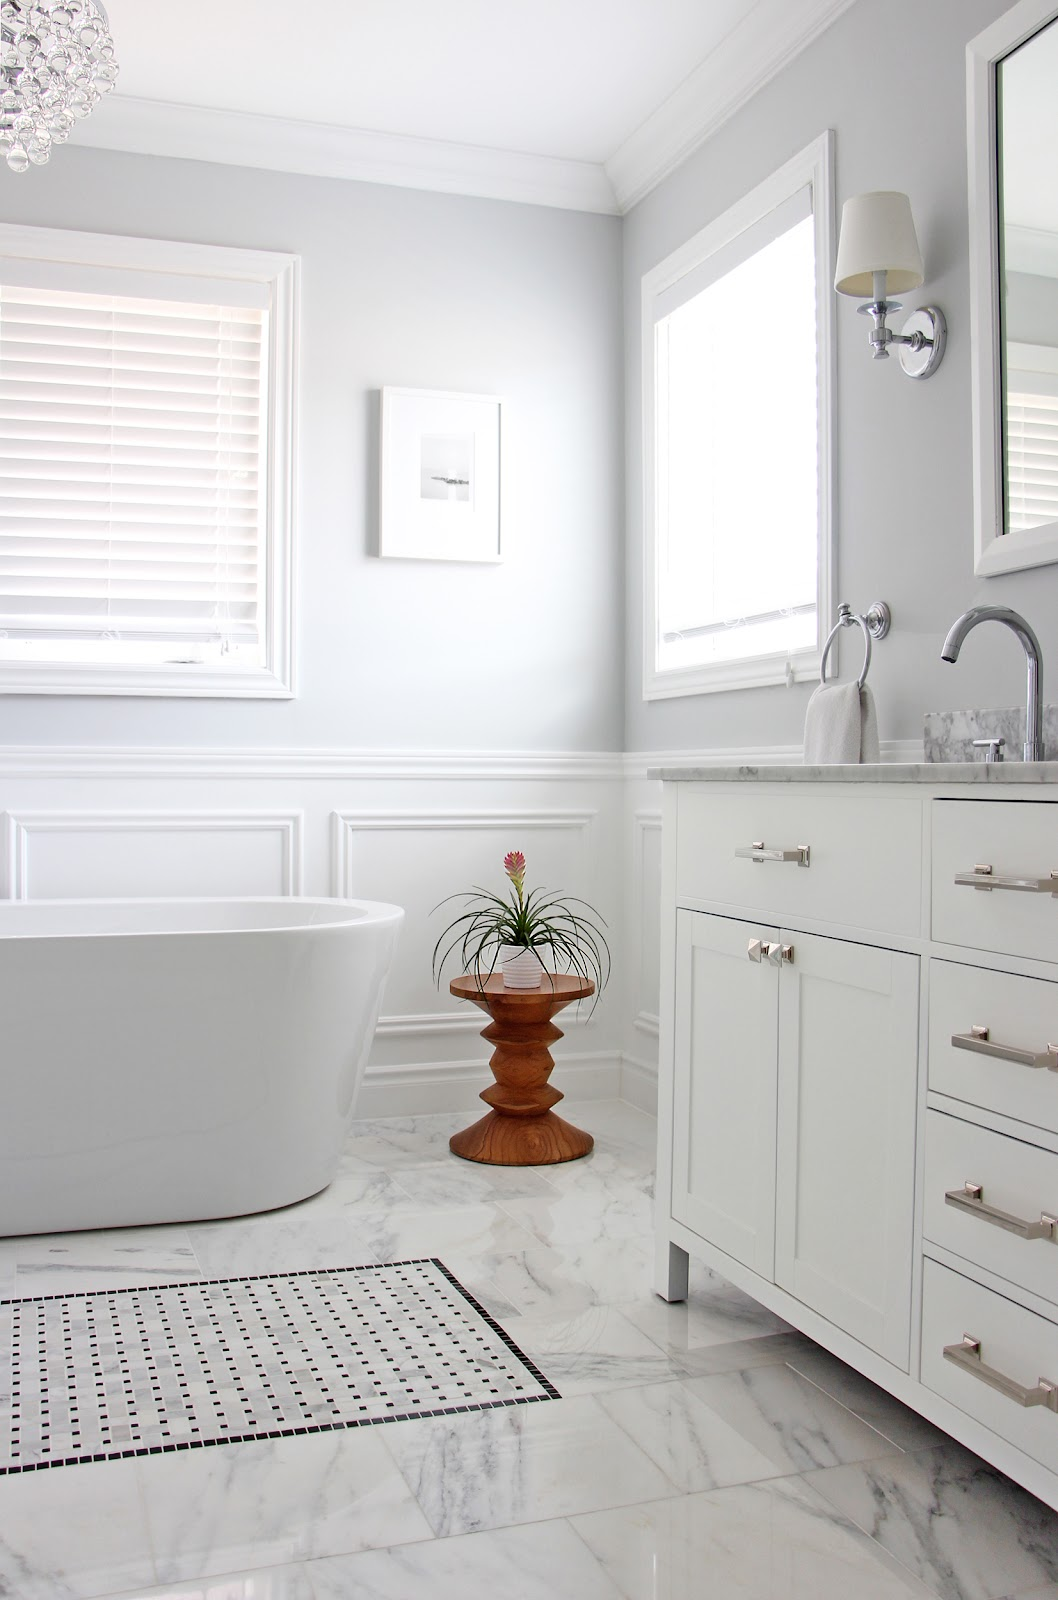 AM Dolce Vita: Tips for Buying Your Next Bathroom Suite